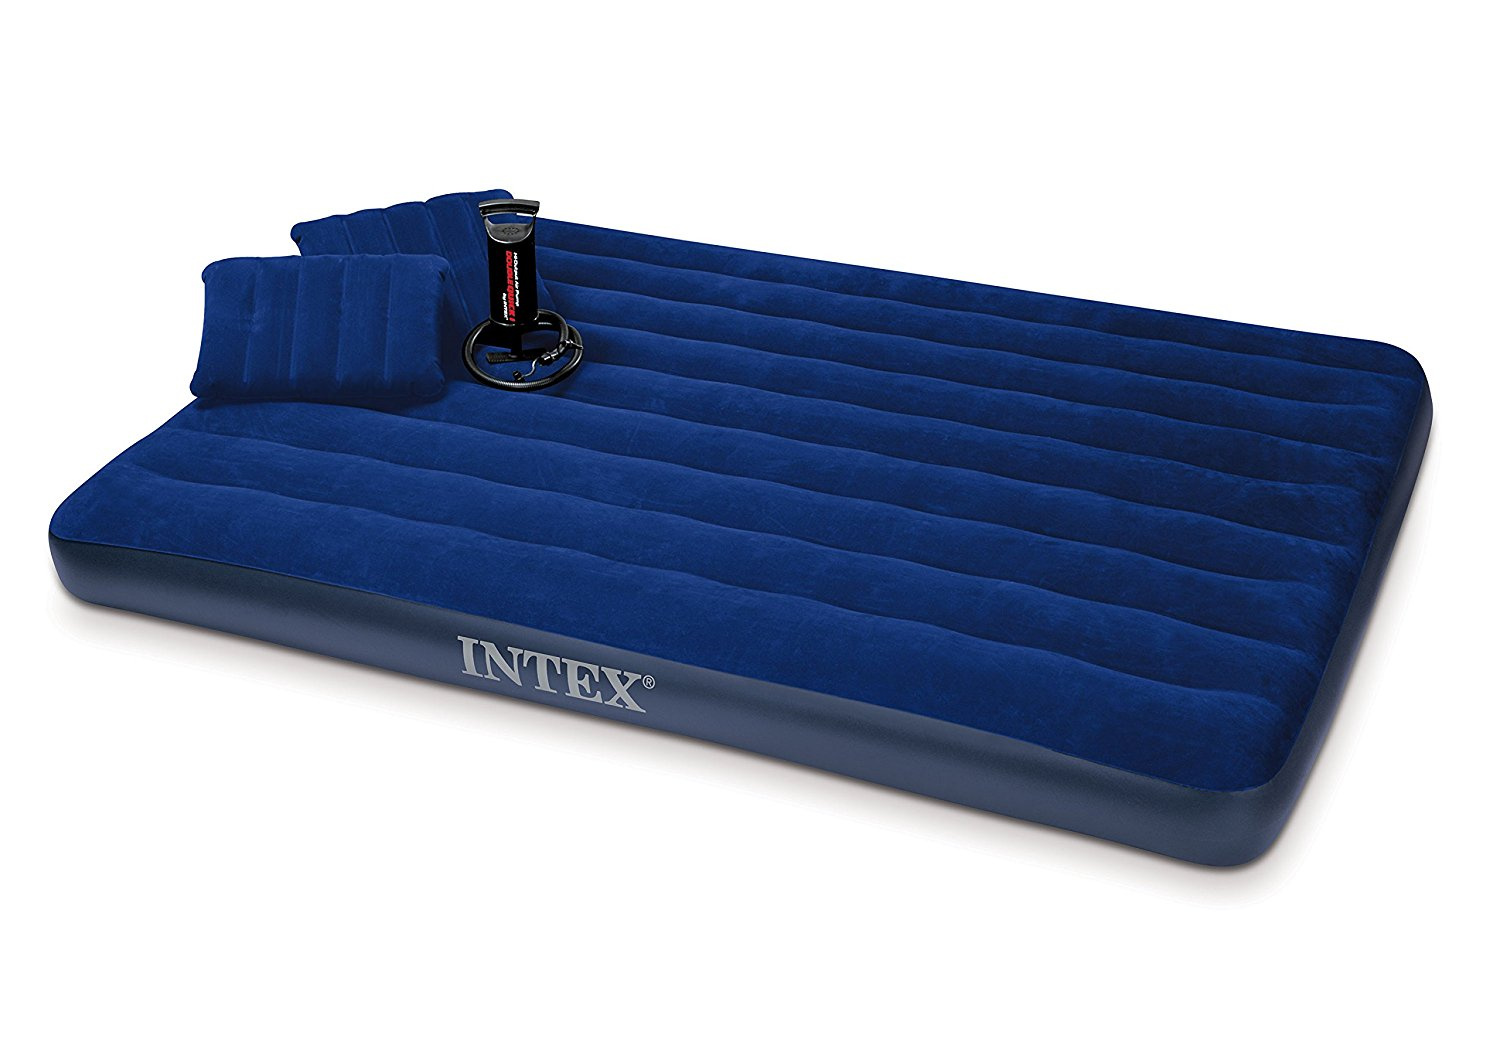 Intex best air mattress